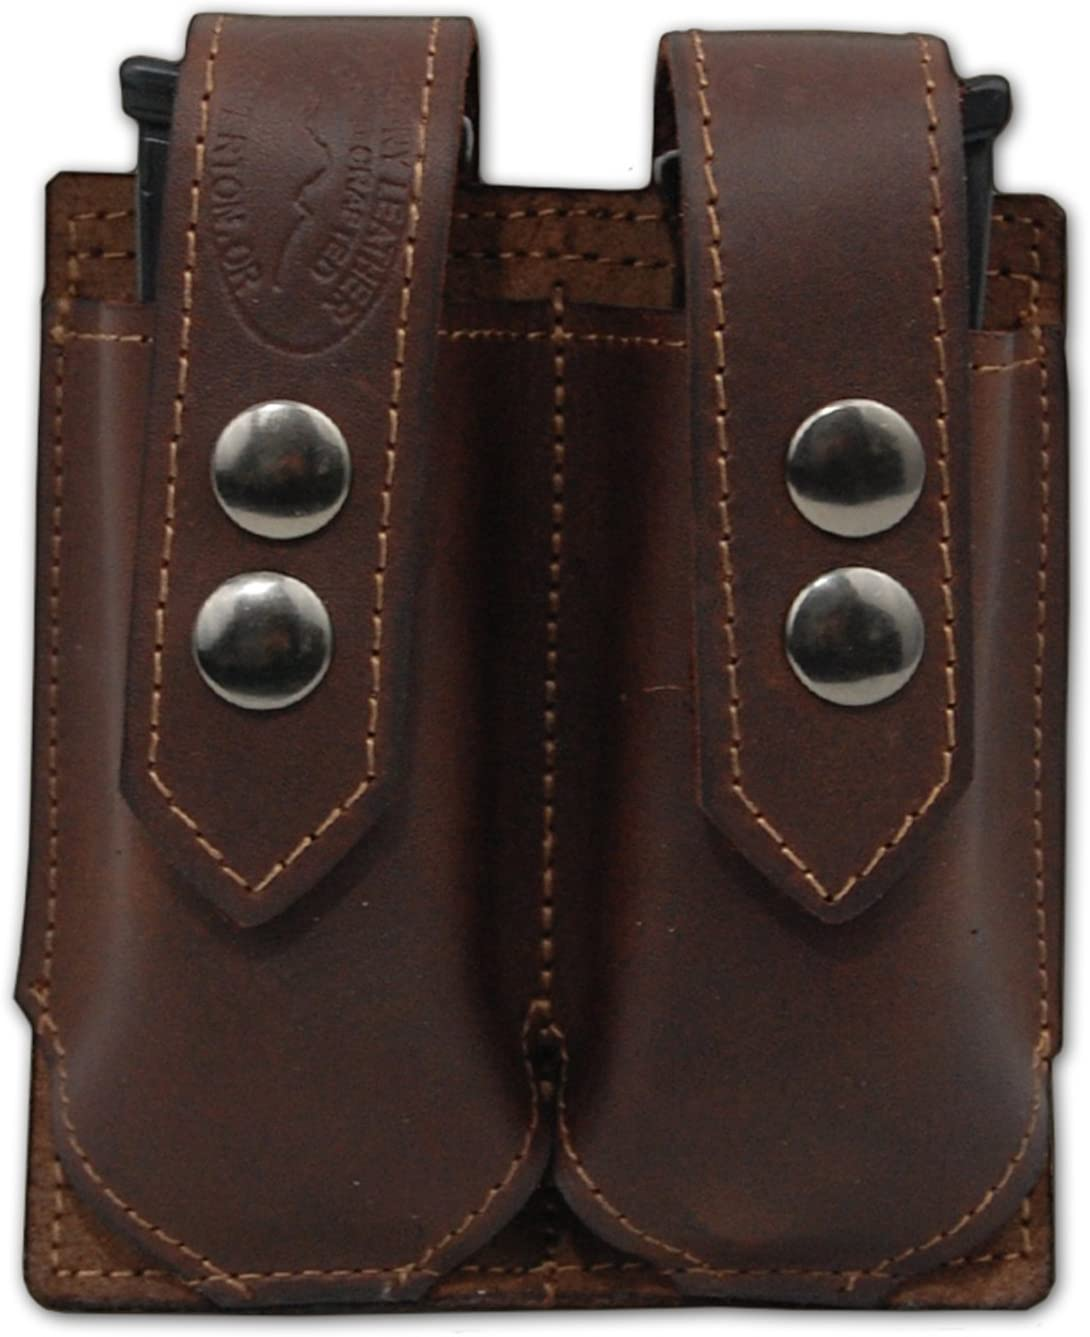 Barsony New Brown Leather Single Magazine Pouch for Full Size 9mm 40 45 71U5-gYIMhL